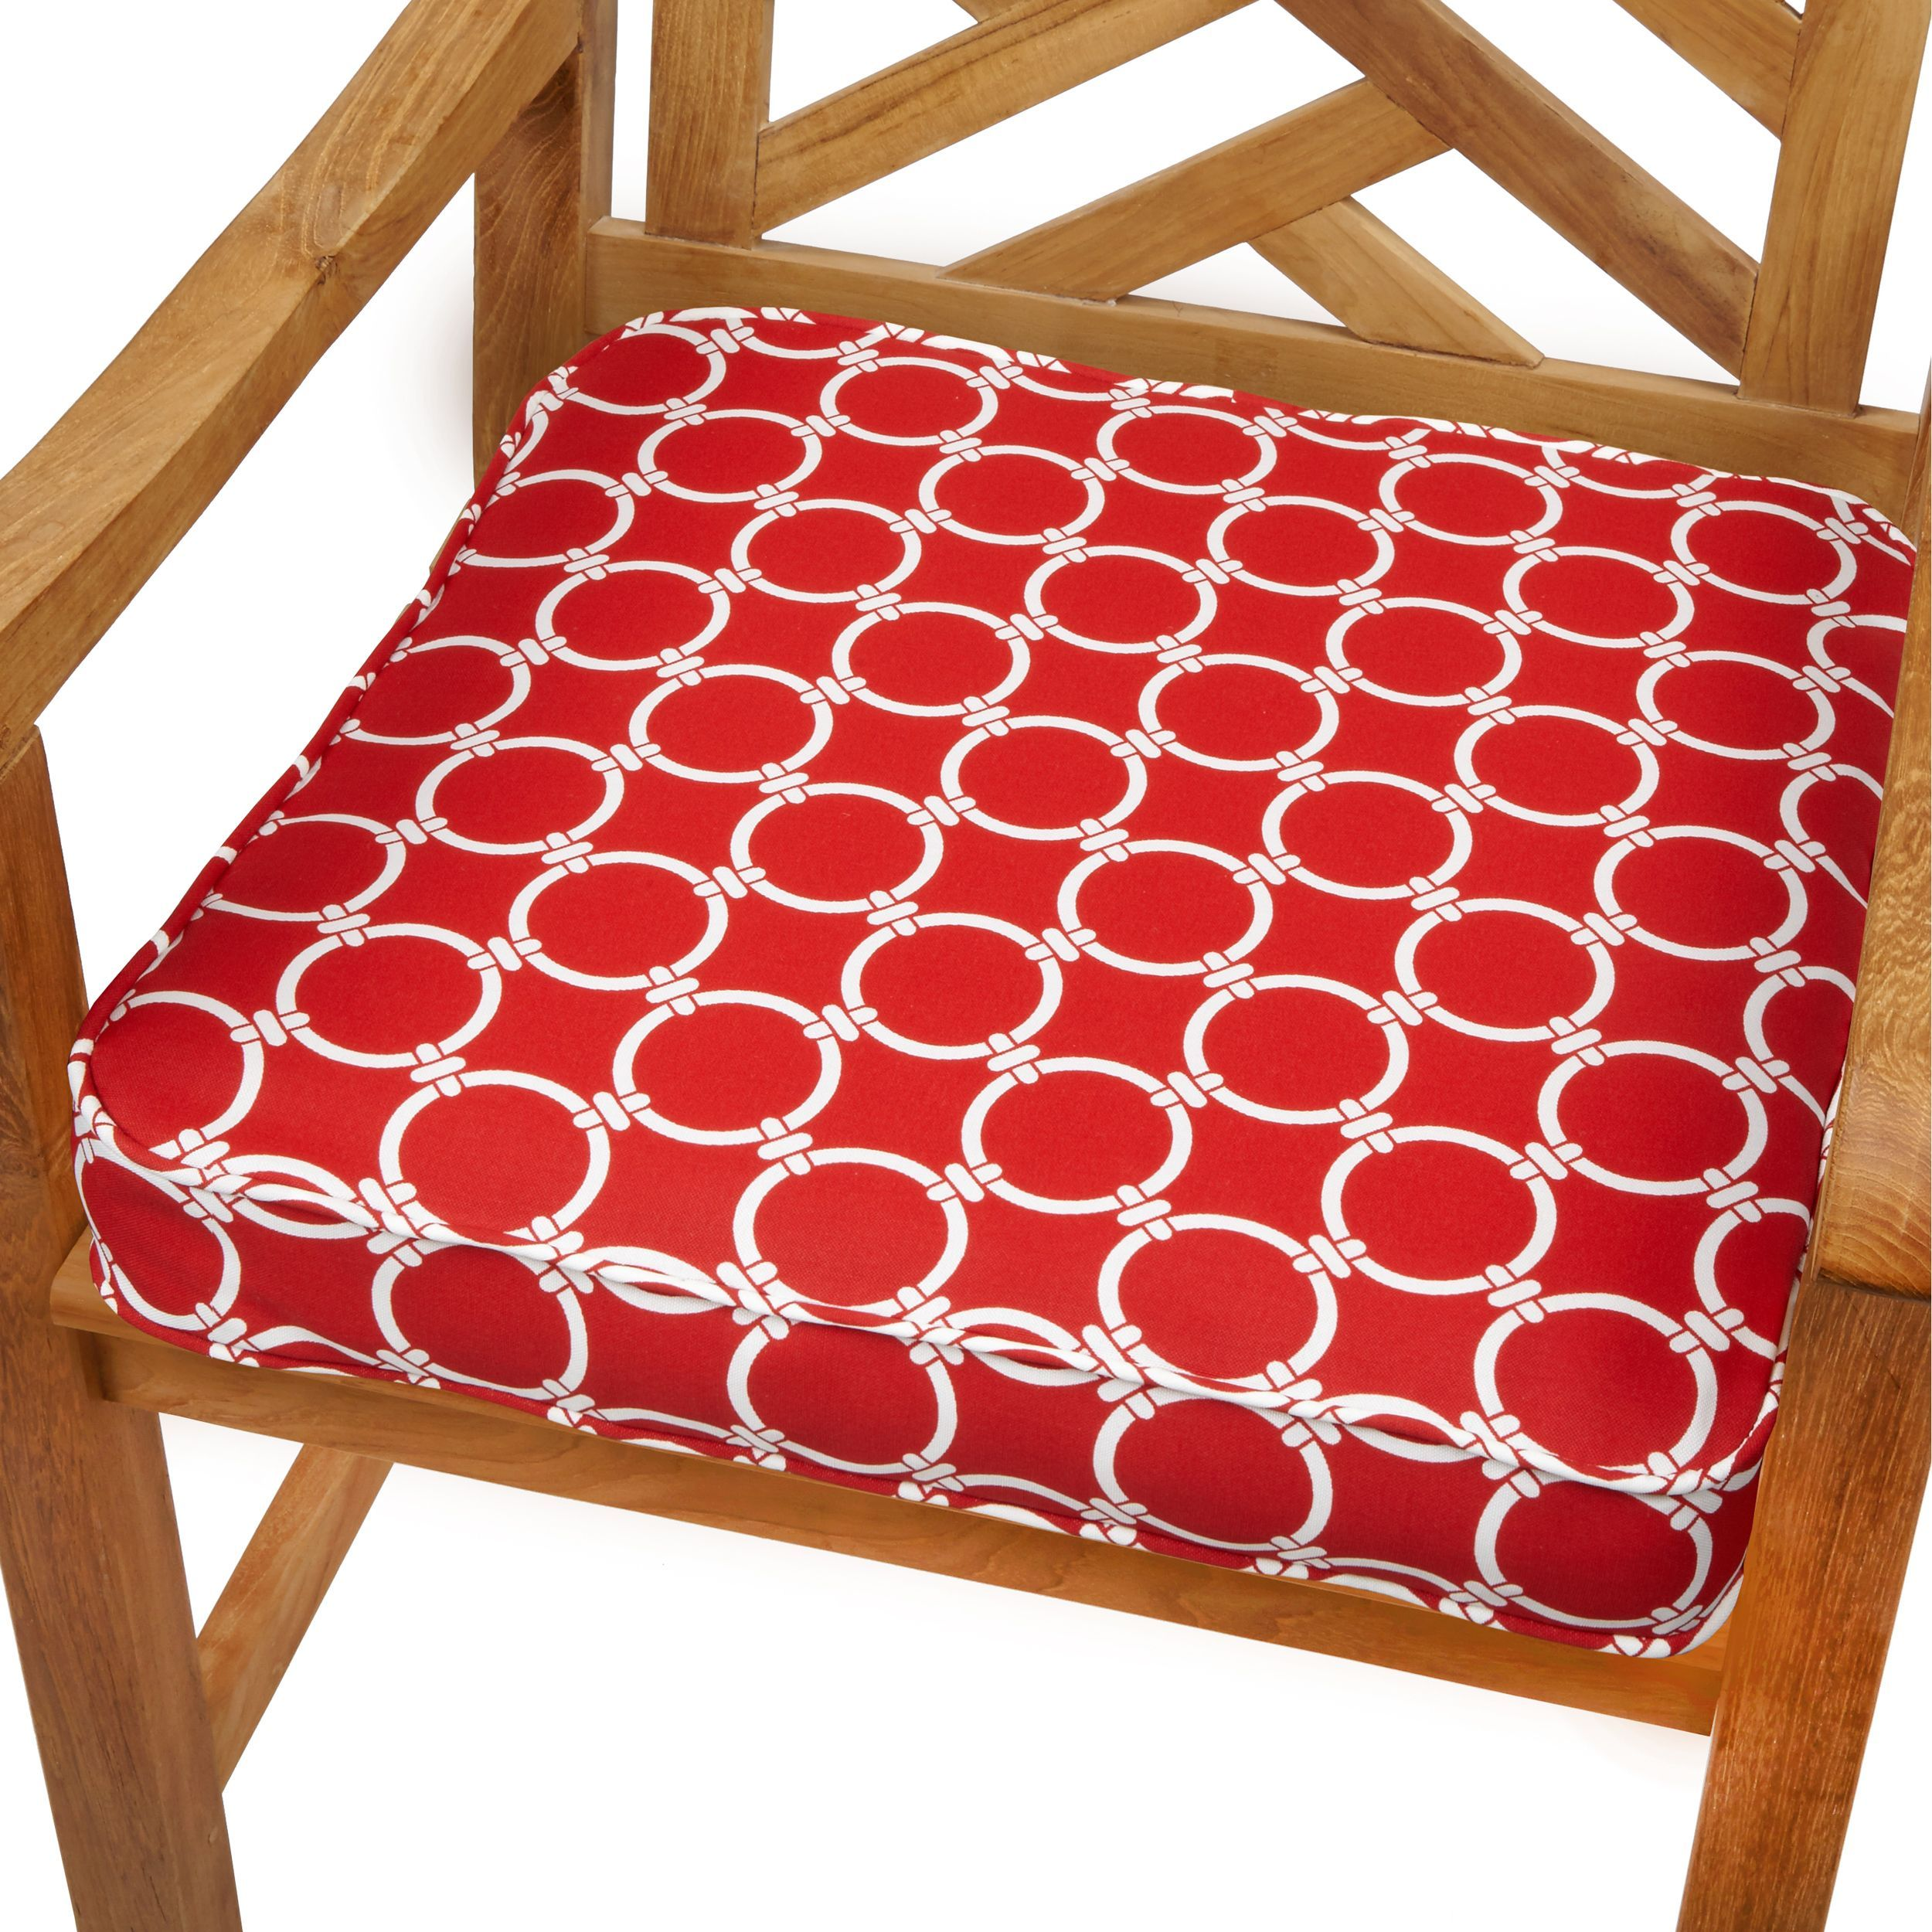 Linked Red 20 Inch Indoor Outdoor Corded Chair Cushion Fabric Geometric Outdoor Cushion Chair Cushions Outdoor Dining Chair Cushions Outdoor Cushions